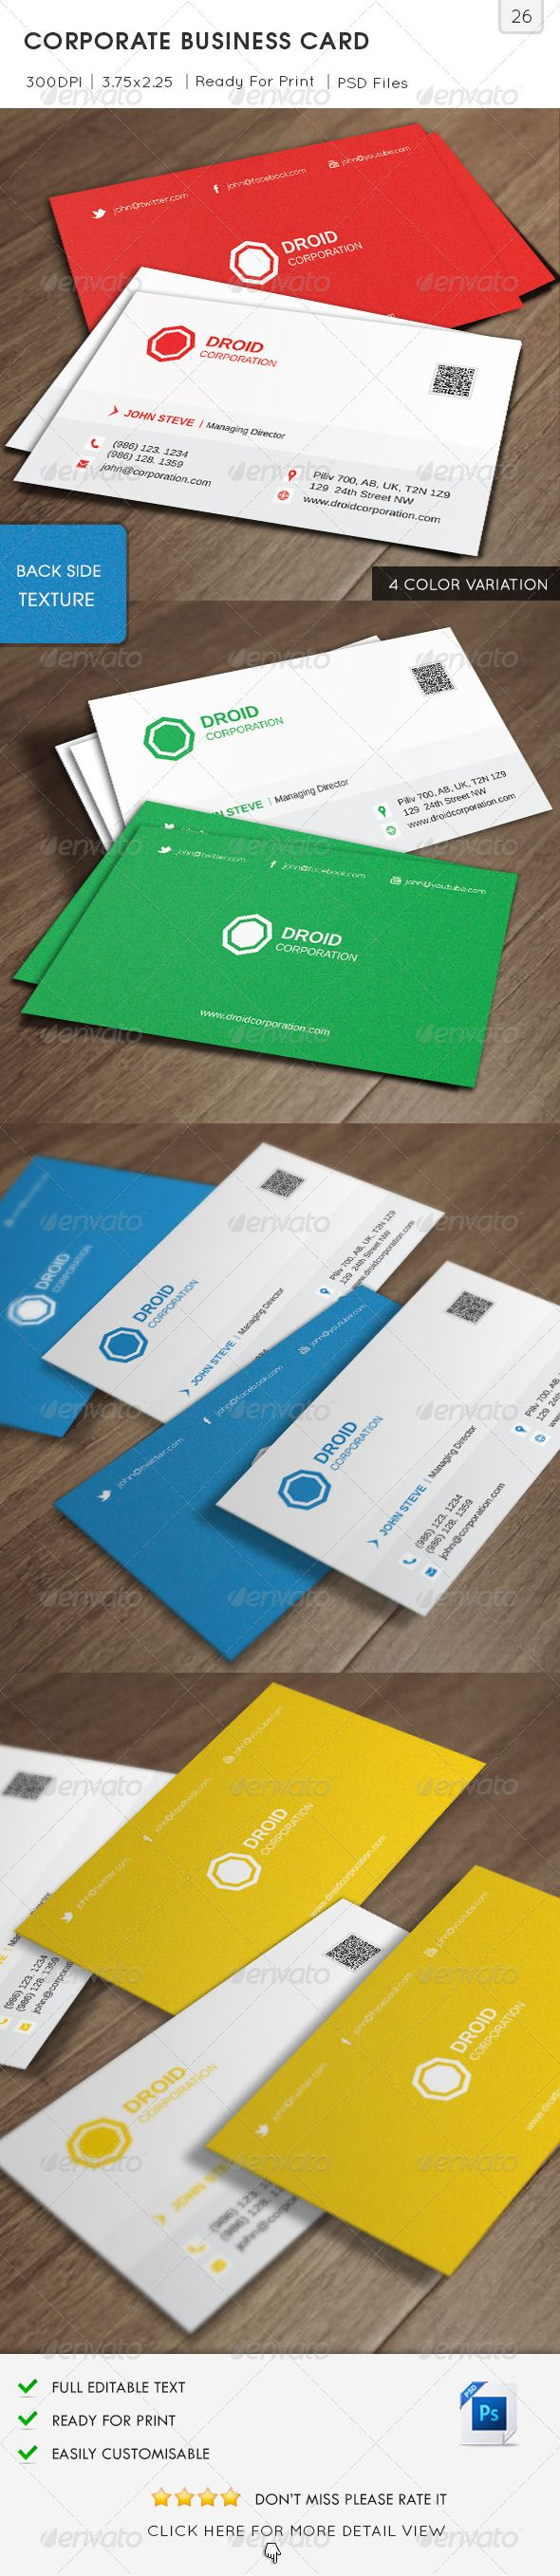 125 best referrals agricultural business cards images on pinterest corporate business card v26 reheart Choice Image